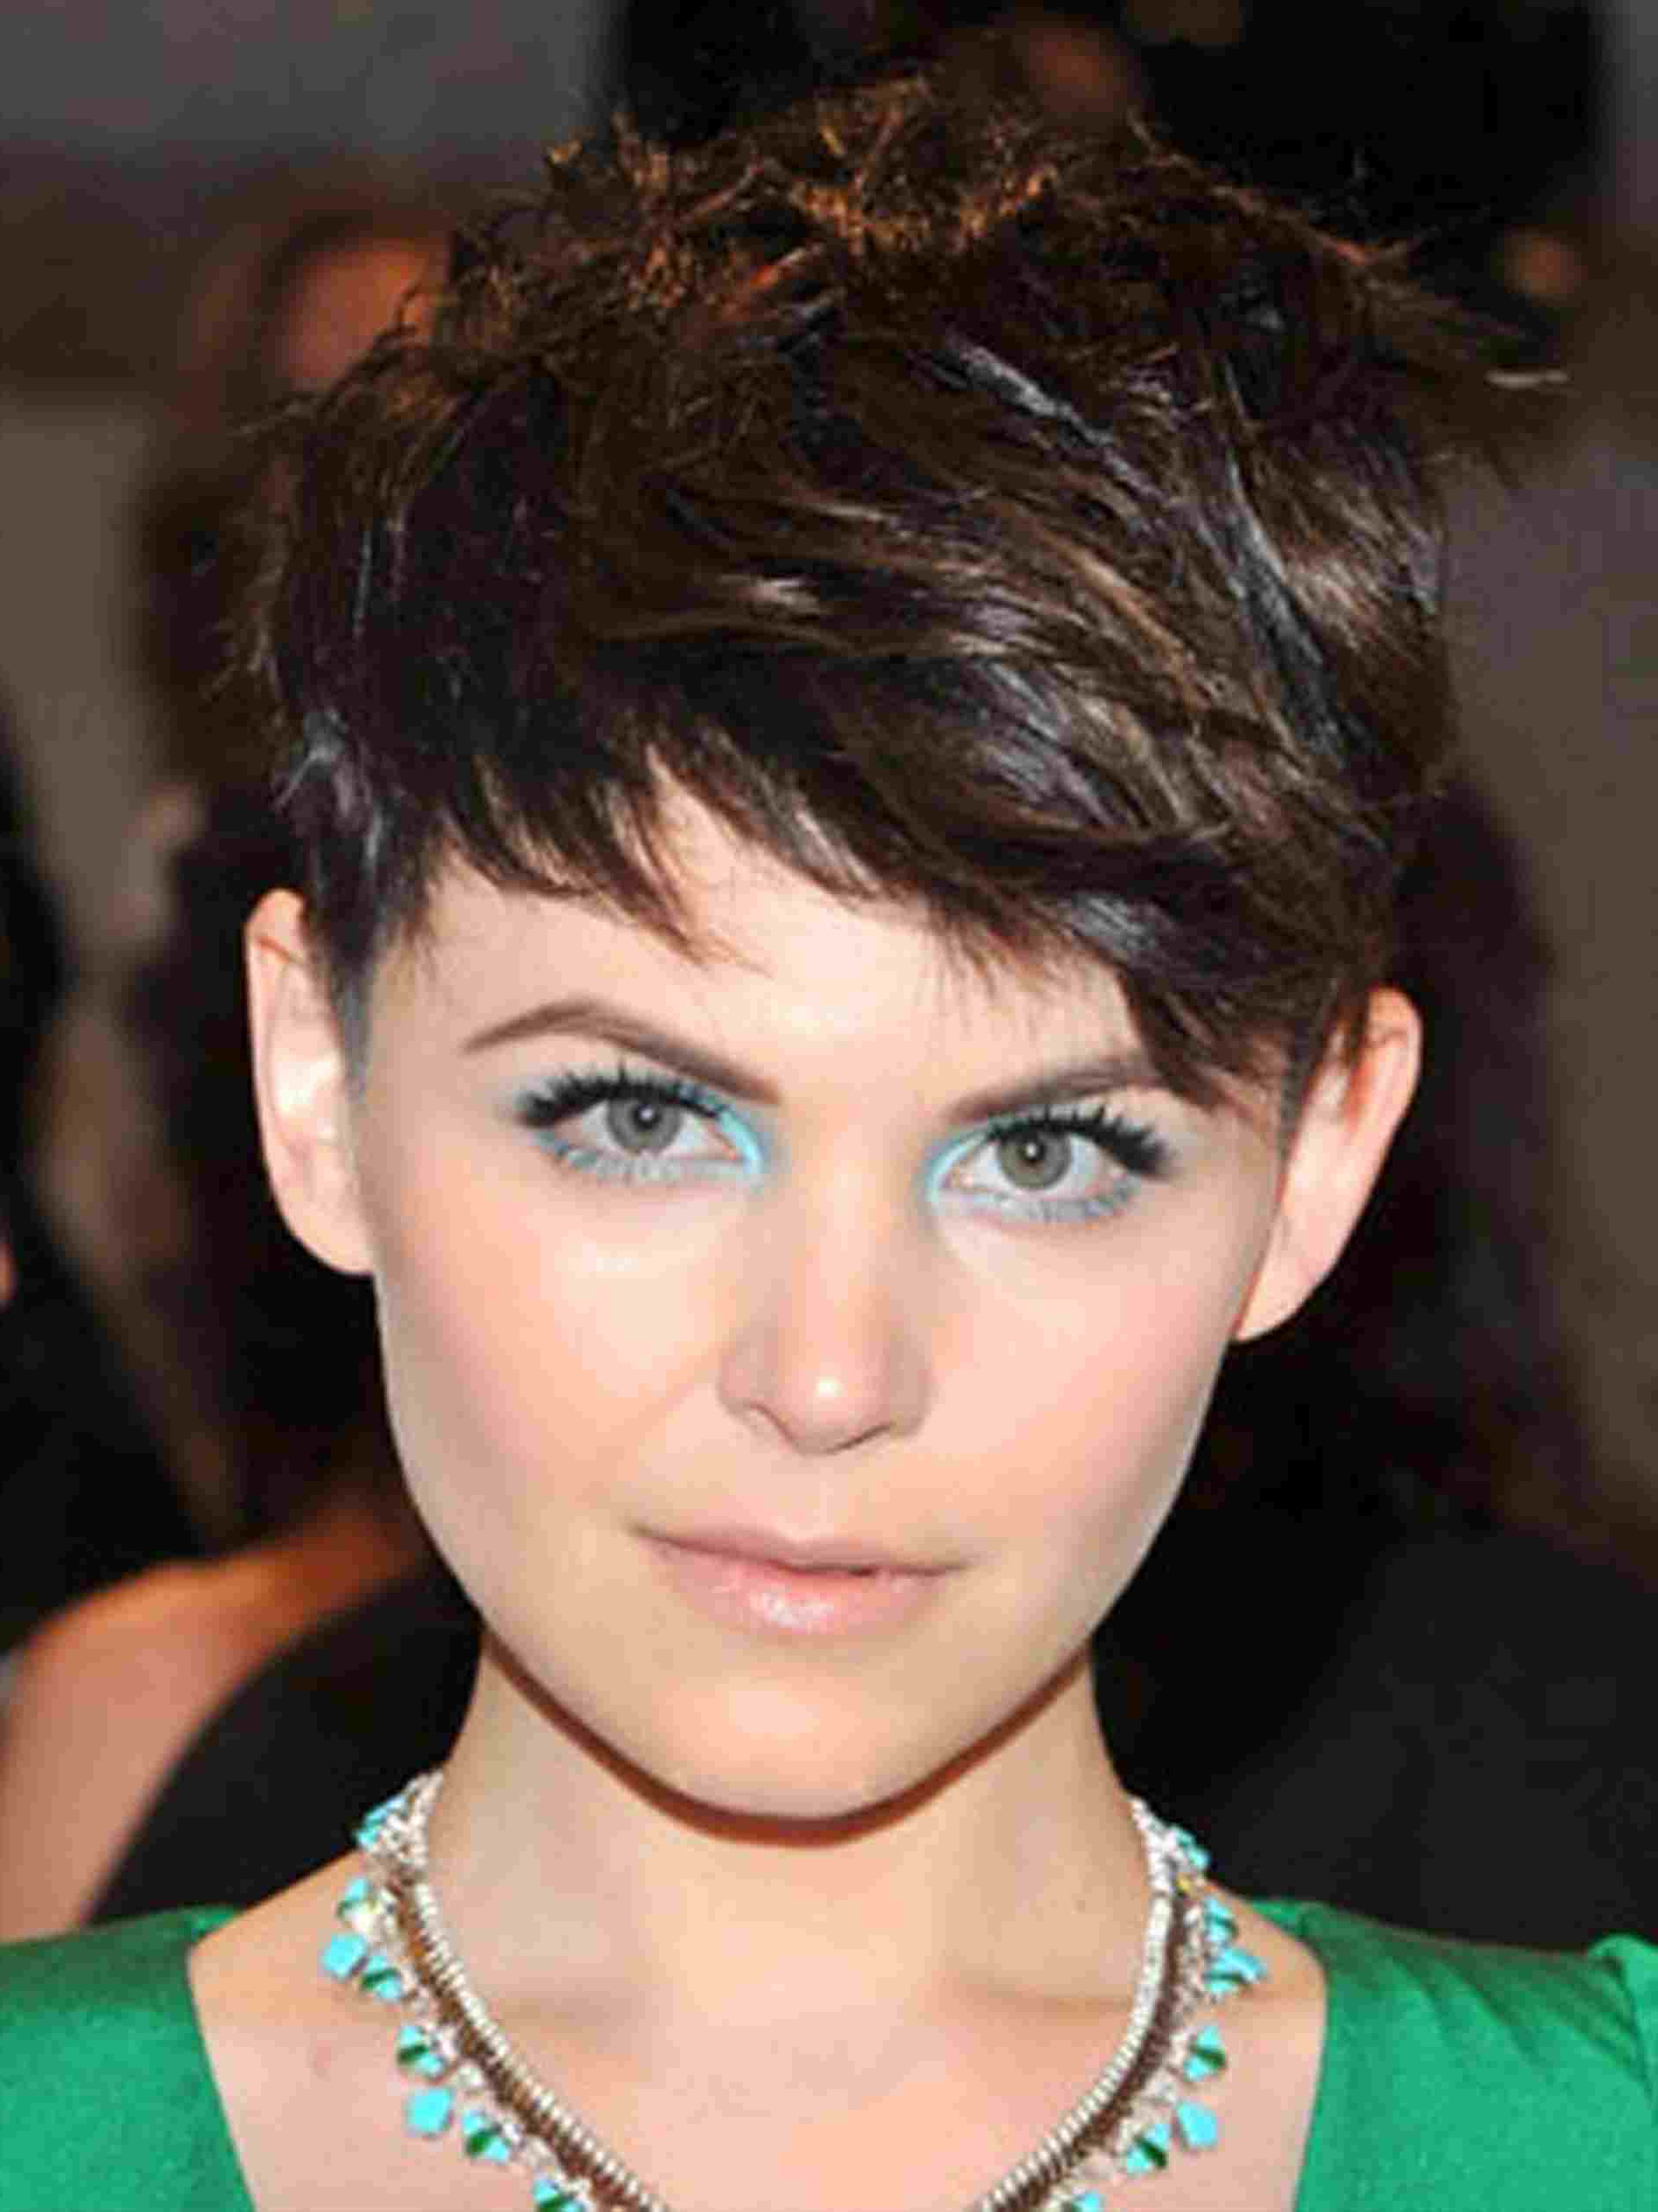 Coarse Archives With Rhsalaxleynewscom To Ladies Short Haircuts For Throughout Medium Short Haircuts For Thick Hair (View 18 of 25)